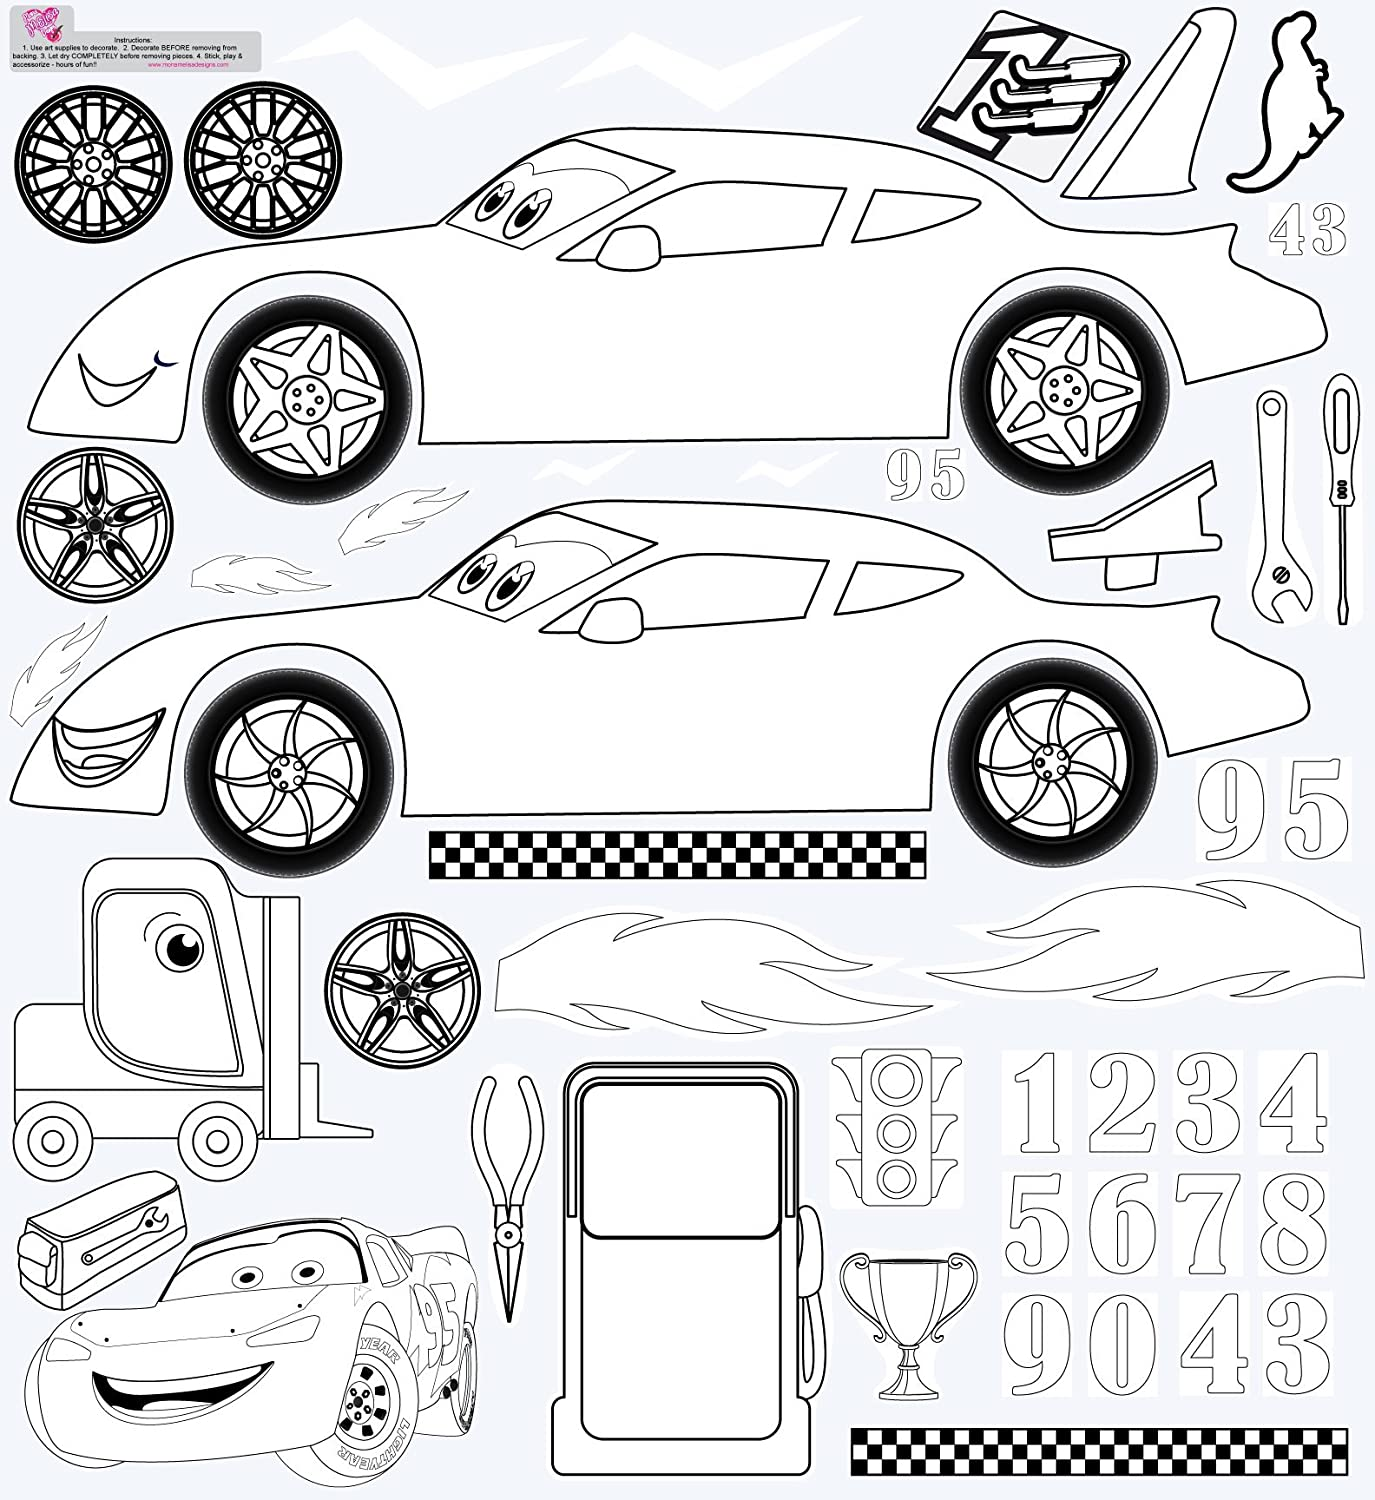 Race Car COLORRACE Mona Melisa Designs Color Me Peel and Stick Wall Decorative Stickers